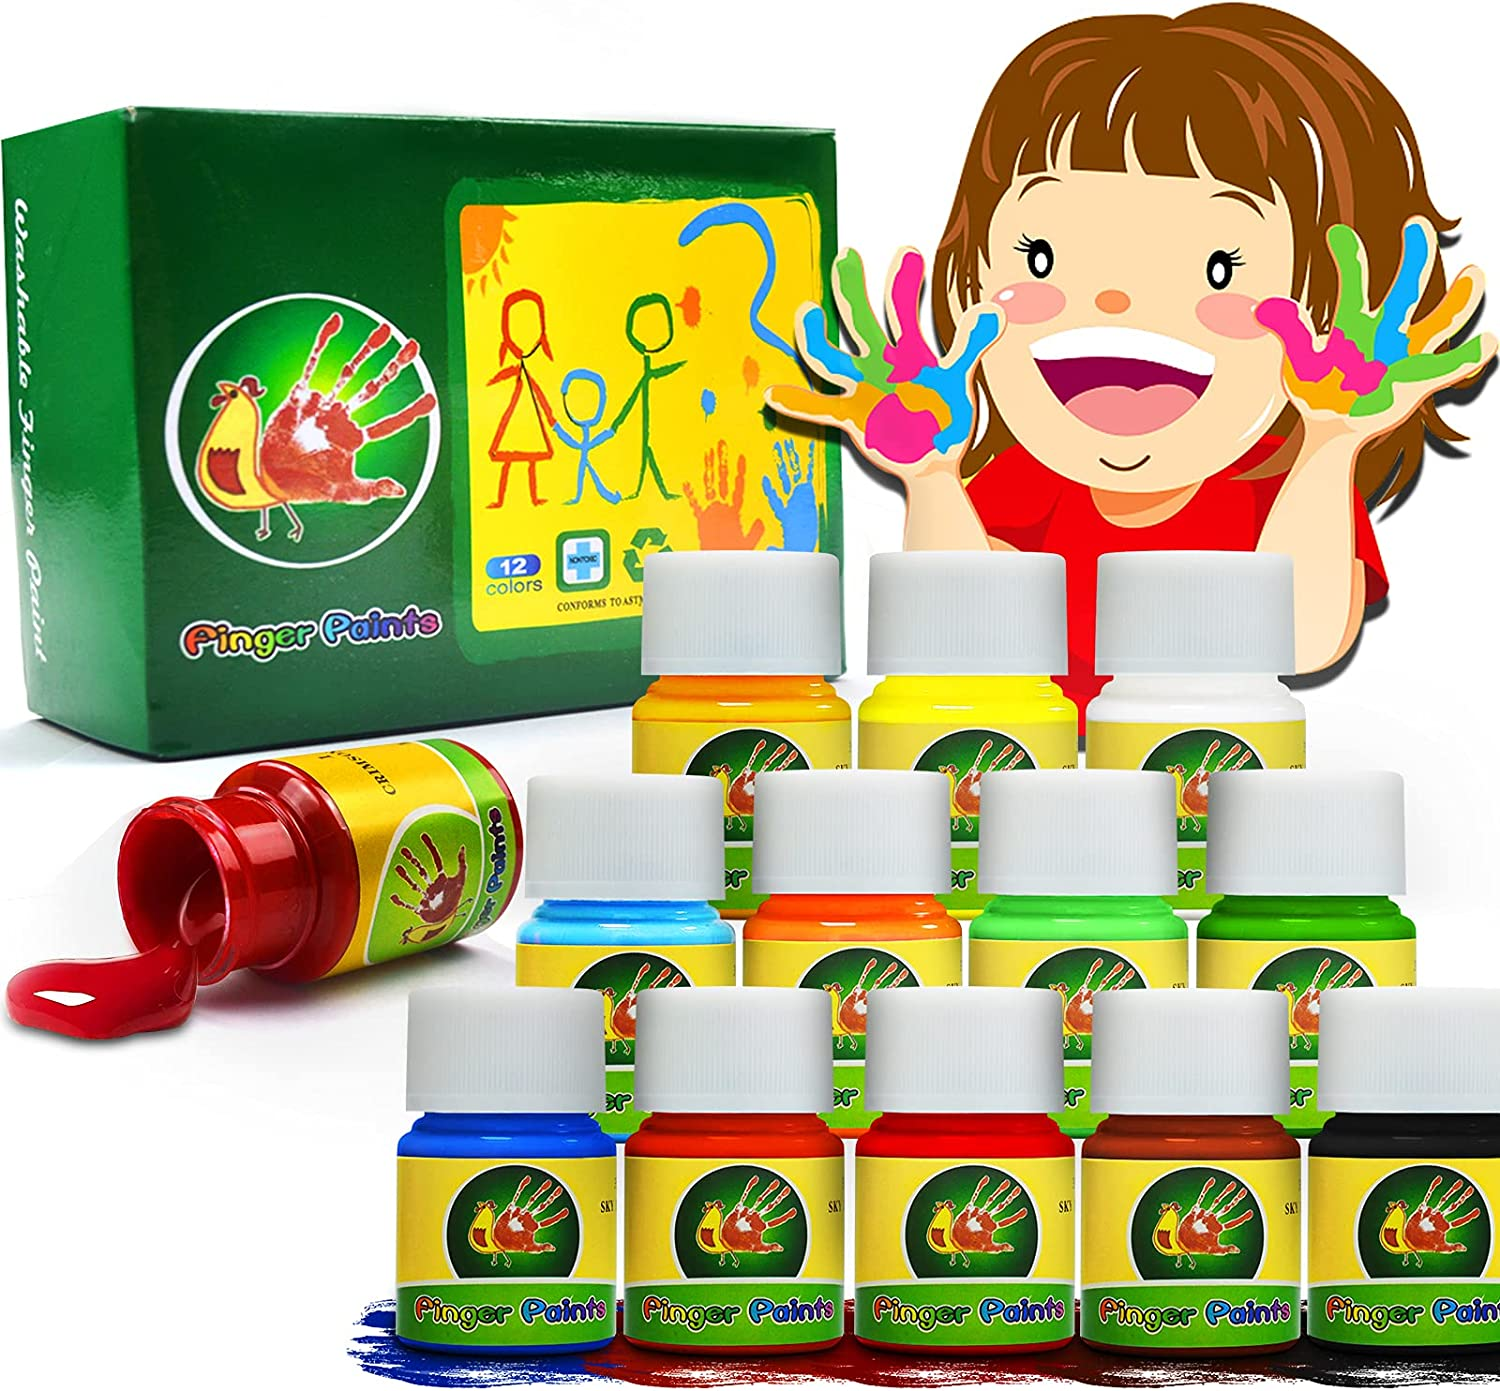 Magicdo Finger Paint for Kids Washable Limited Our shop most popular Special Price Non-Toxic Temper Toddlers